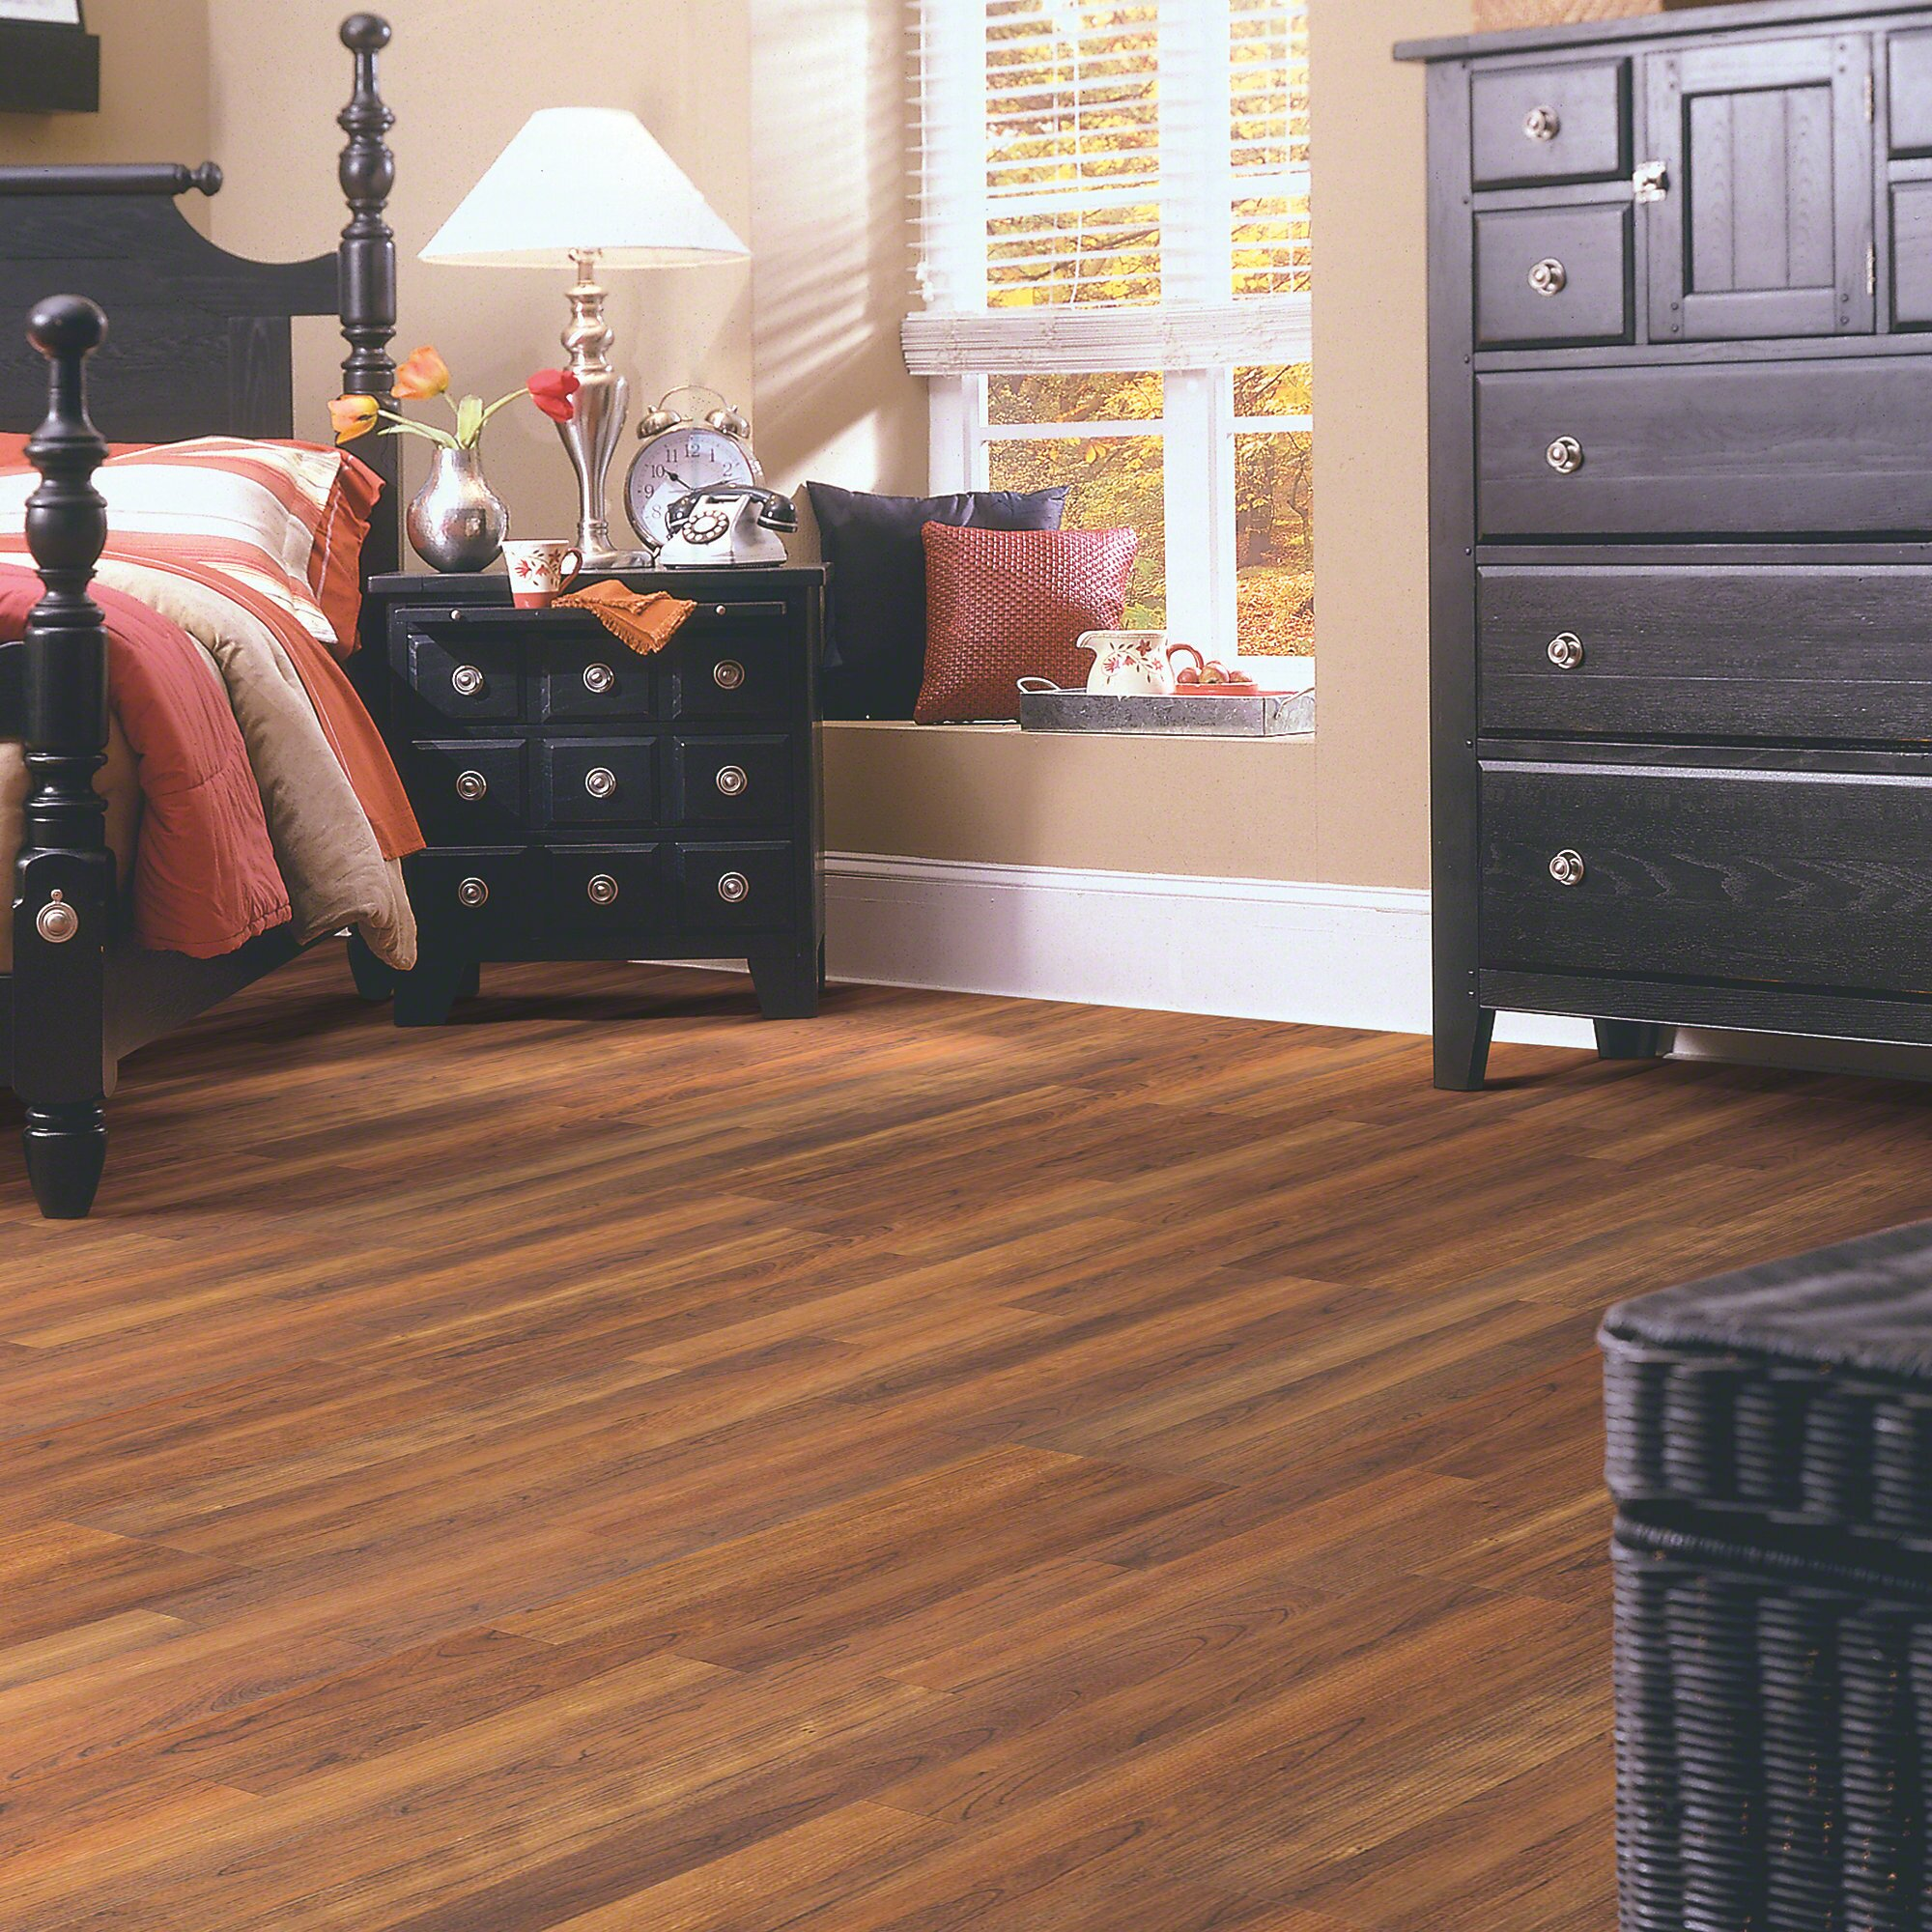 Cherry Laminate Flooring harmics brazilian cherry laminate flooring with beveled edges made by unilin Fairfax Cherry Laminate In Woodlawn